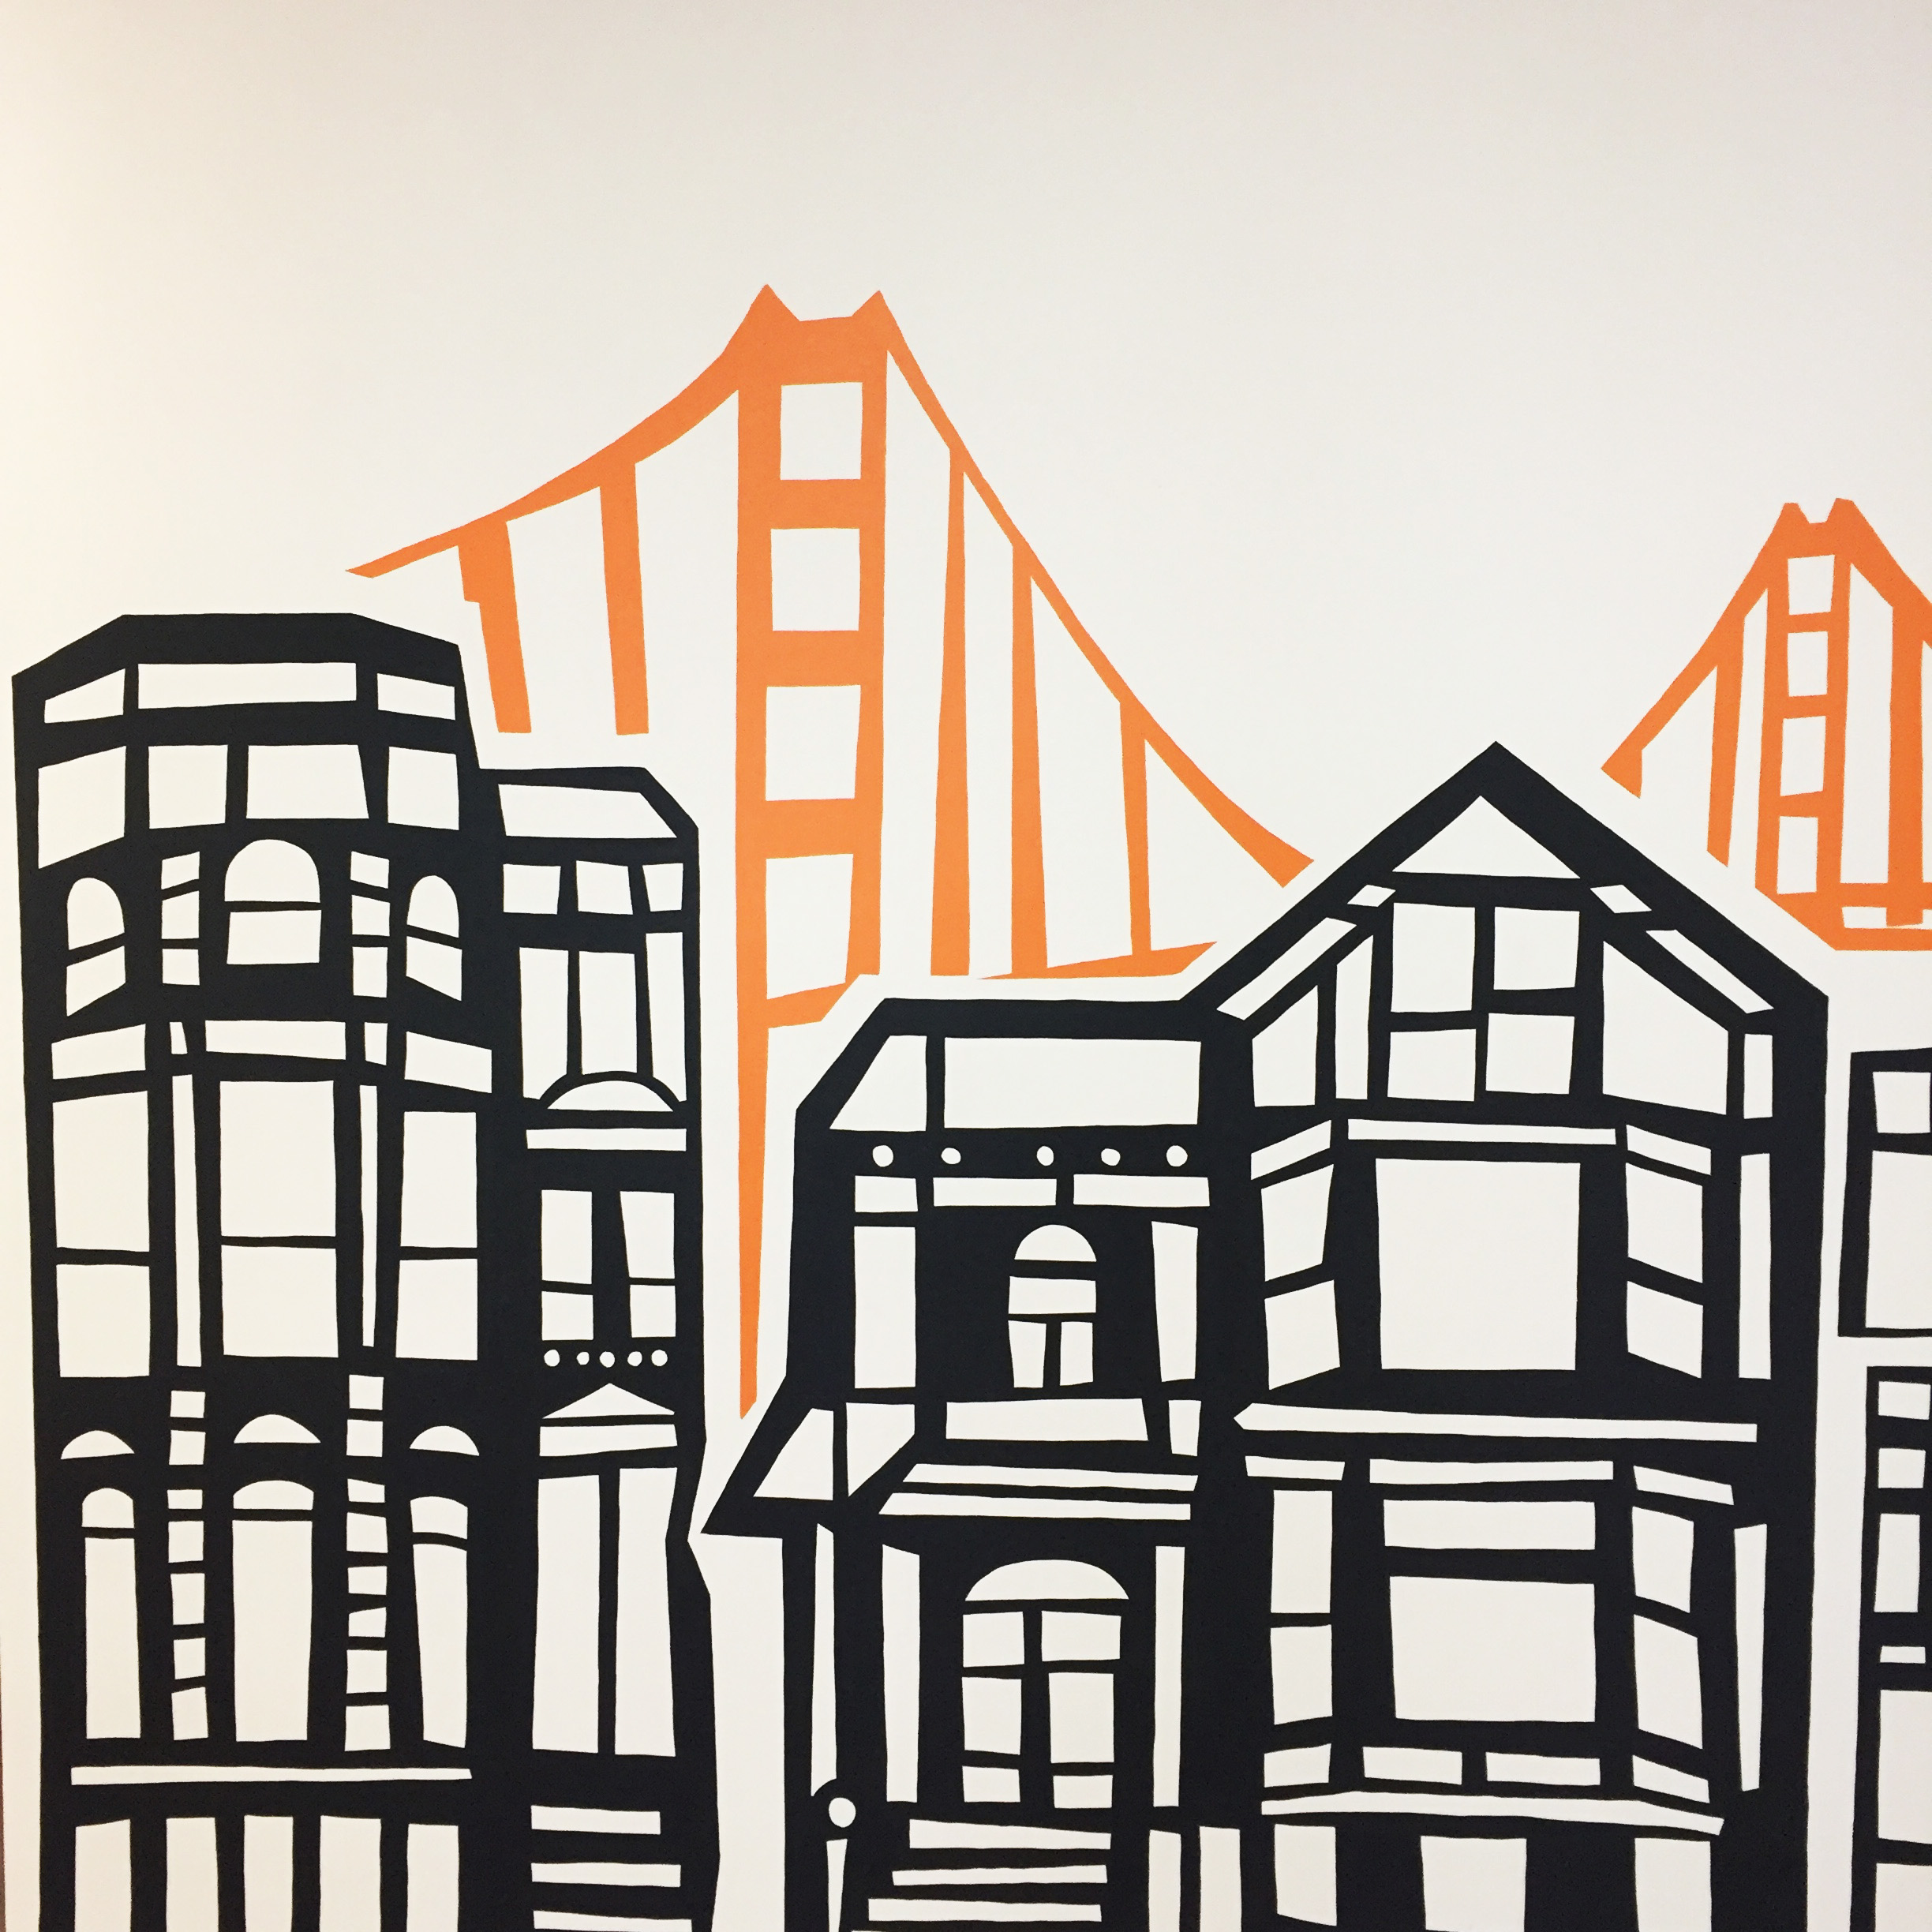 Office-commercial-mural-san-francisco-ballast-wall-and-wall-mural-company_005.jpeg